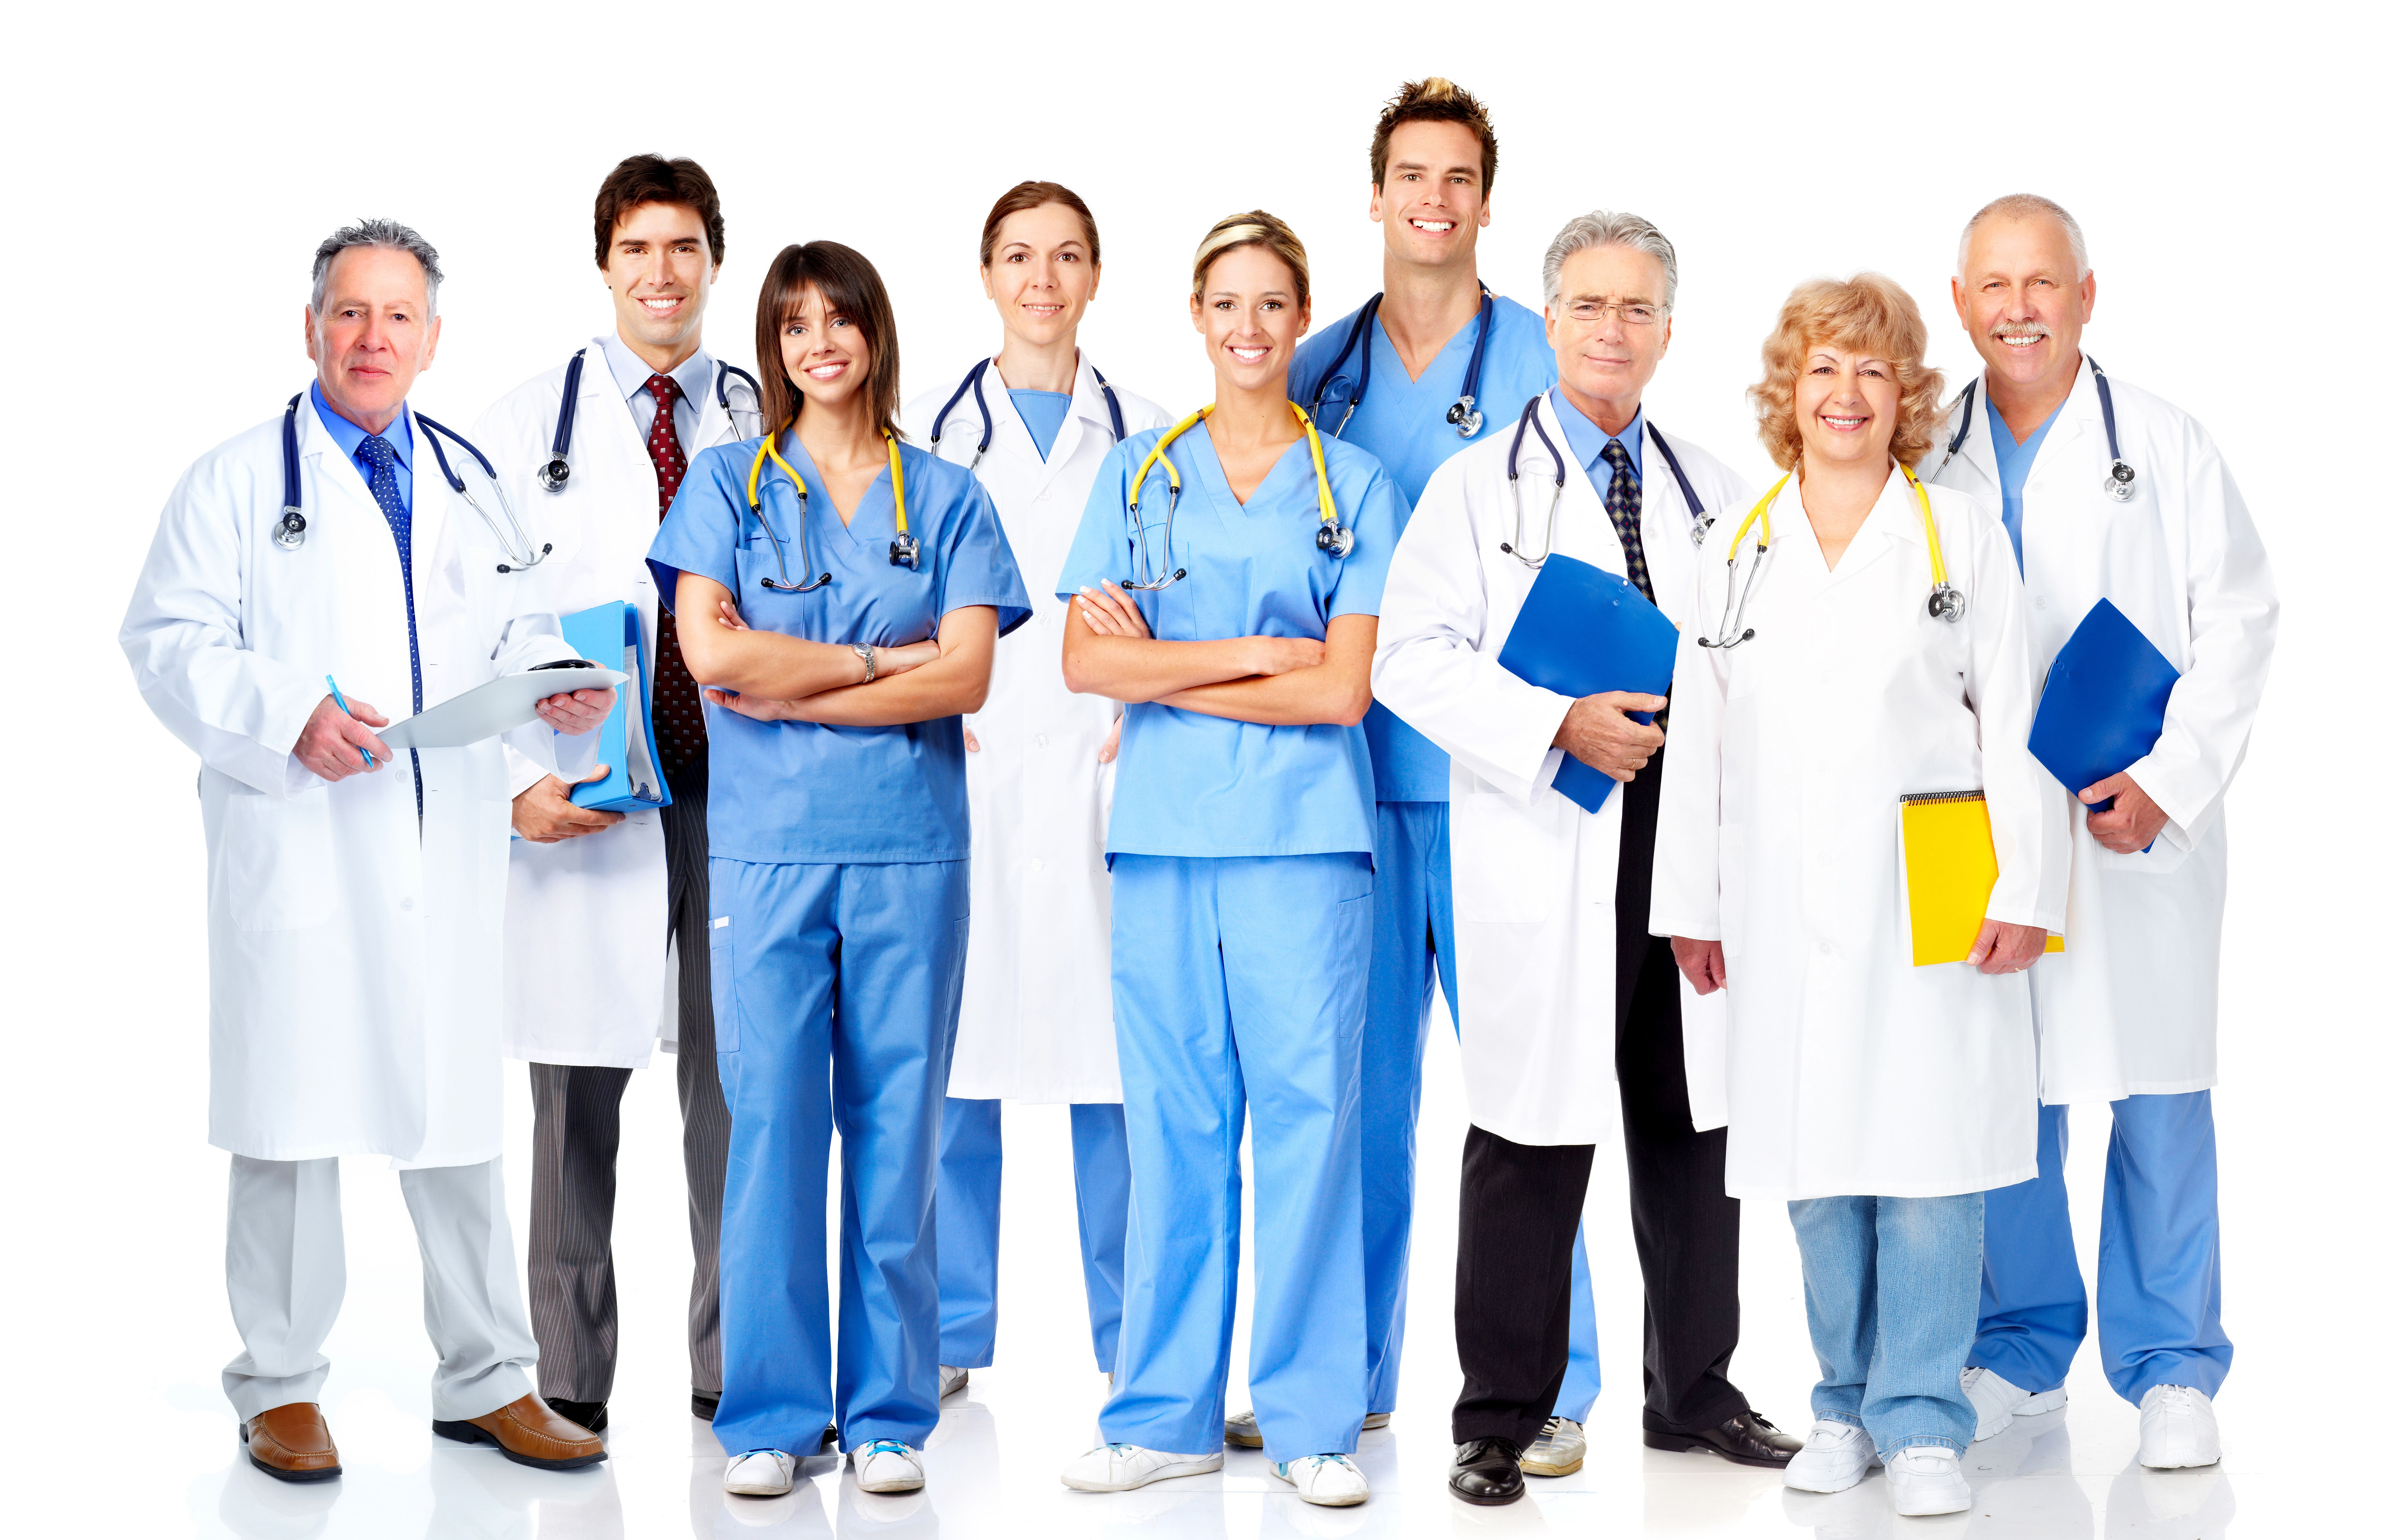 Mba healthcare management national health service